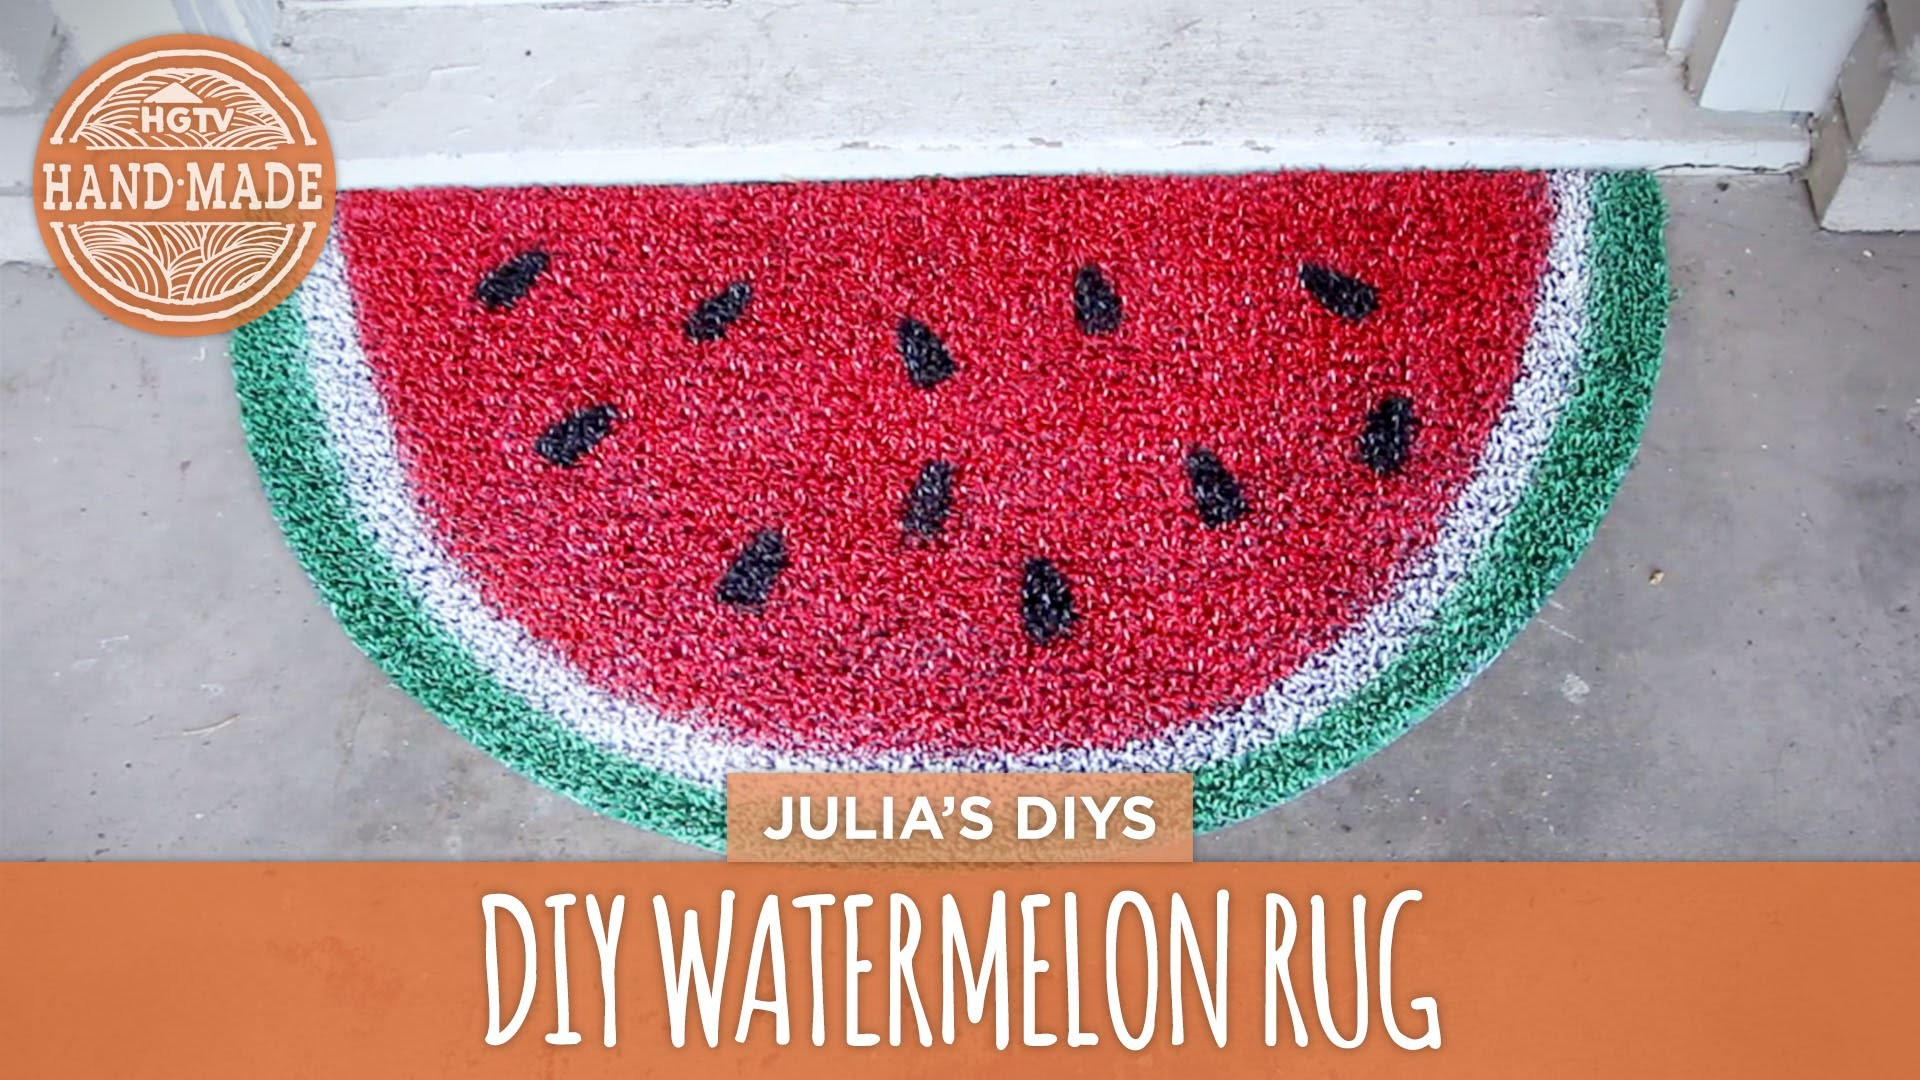 DIY Watermelon Rug - HGTV Handmade